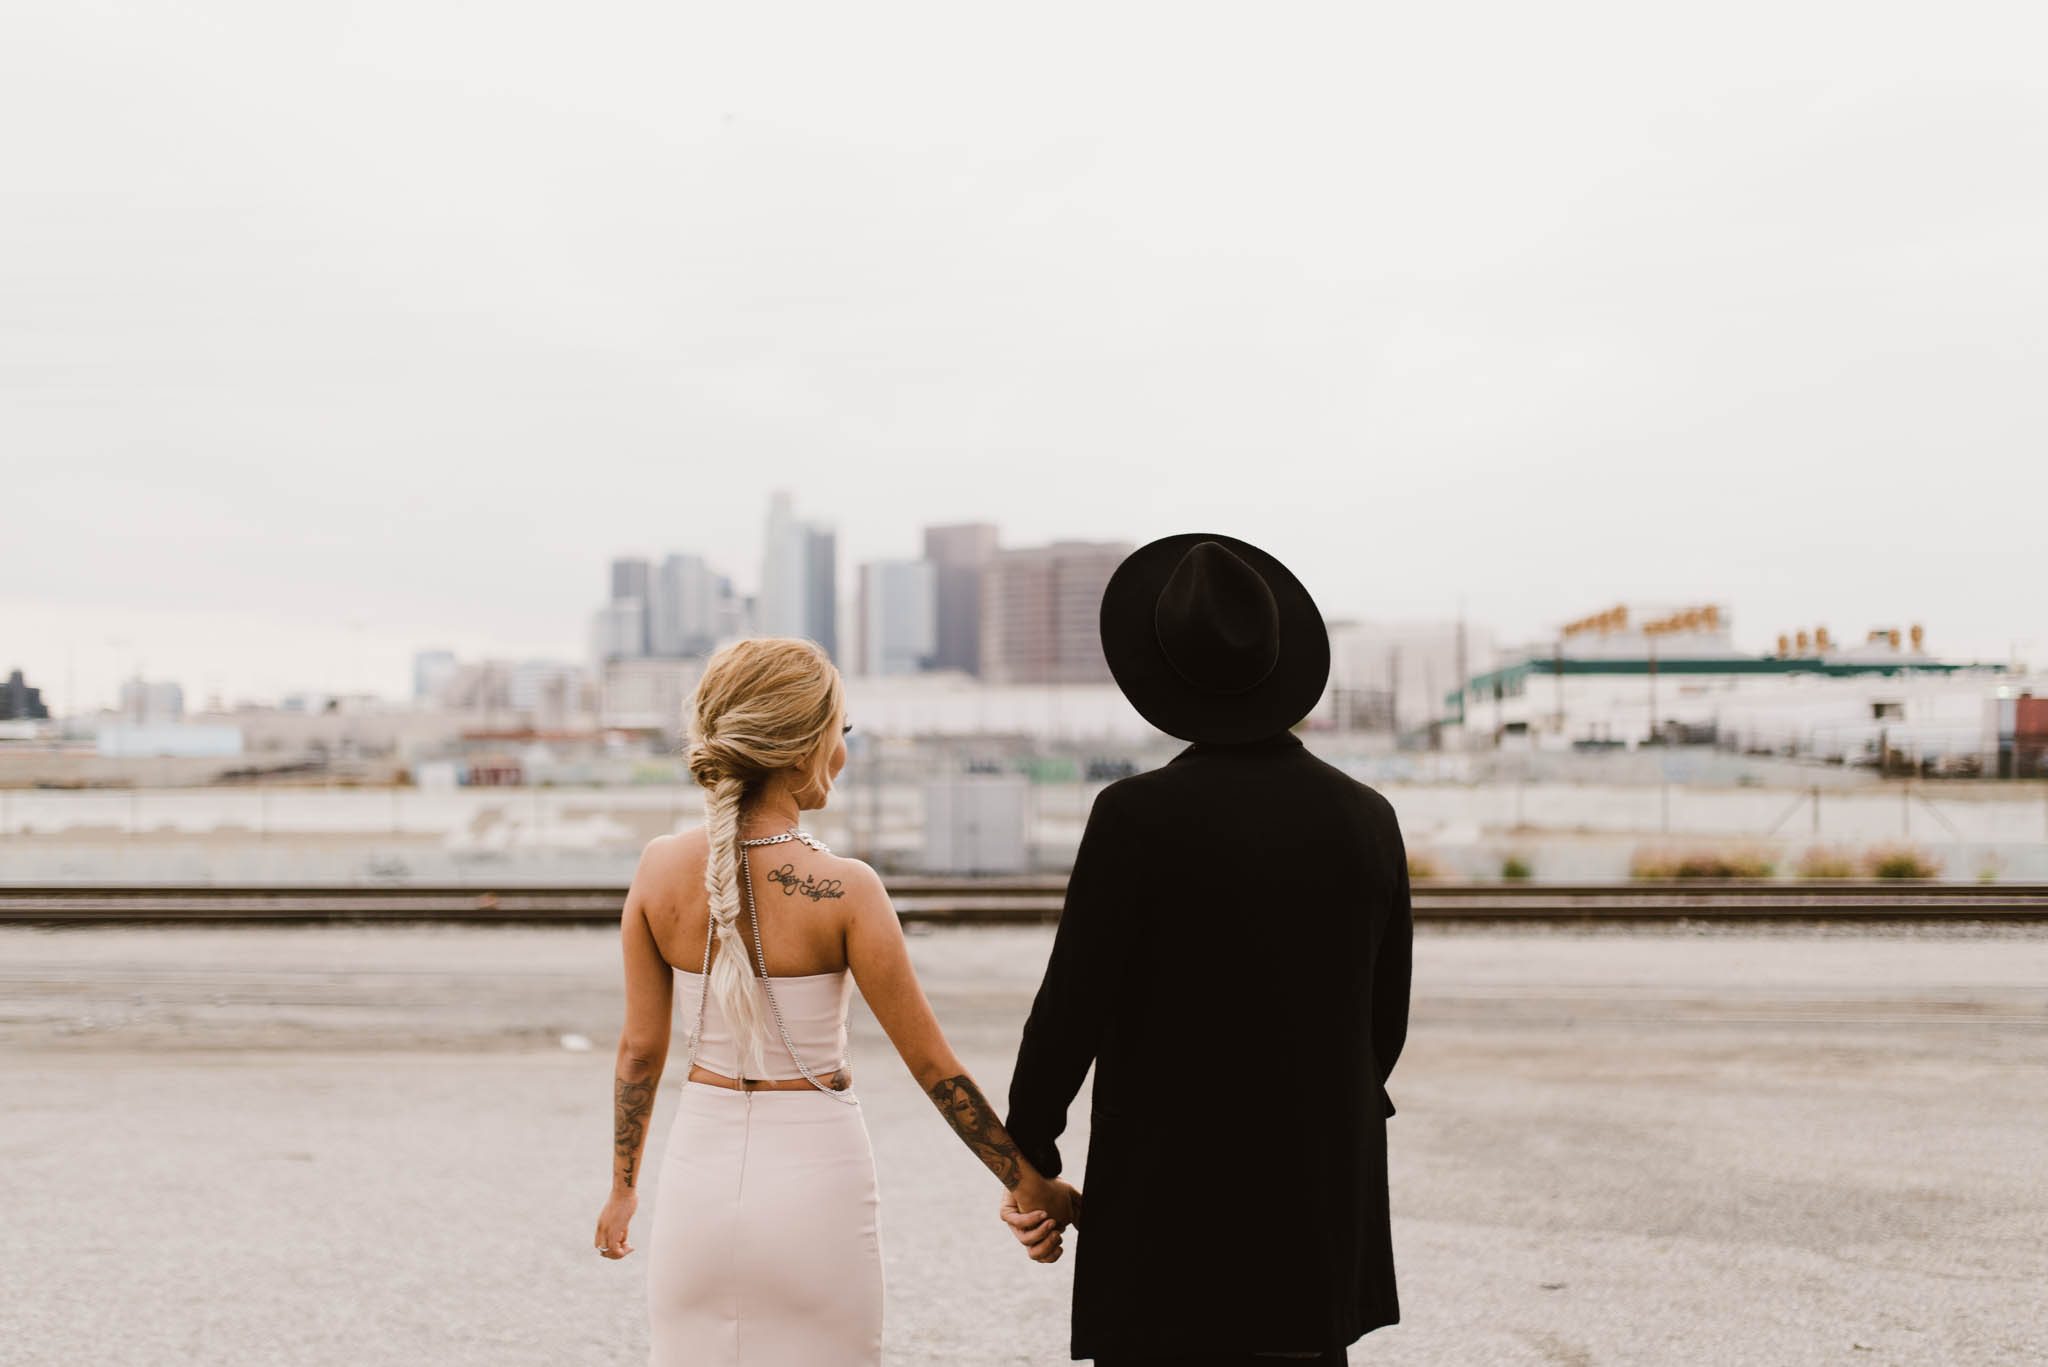 ©Isaiah-&-Taylor-Photography---Downtown-Los-Angeles-Skyline-Engagement-022.jpg